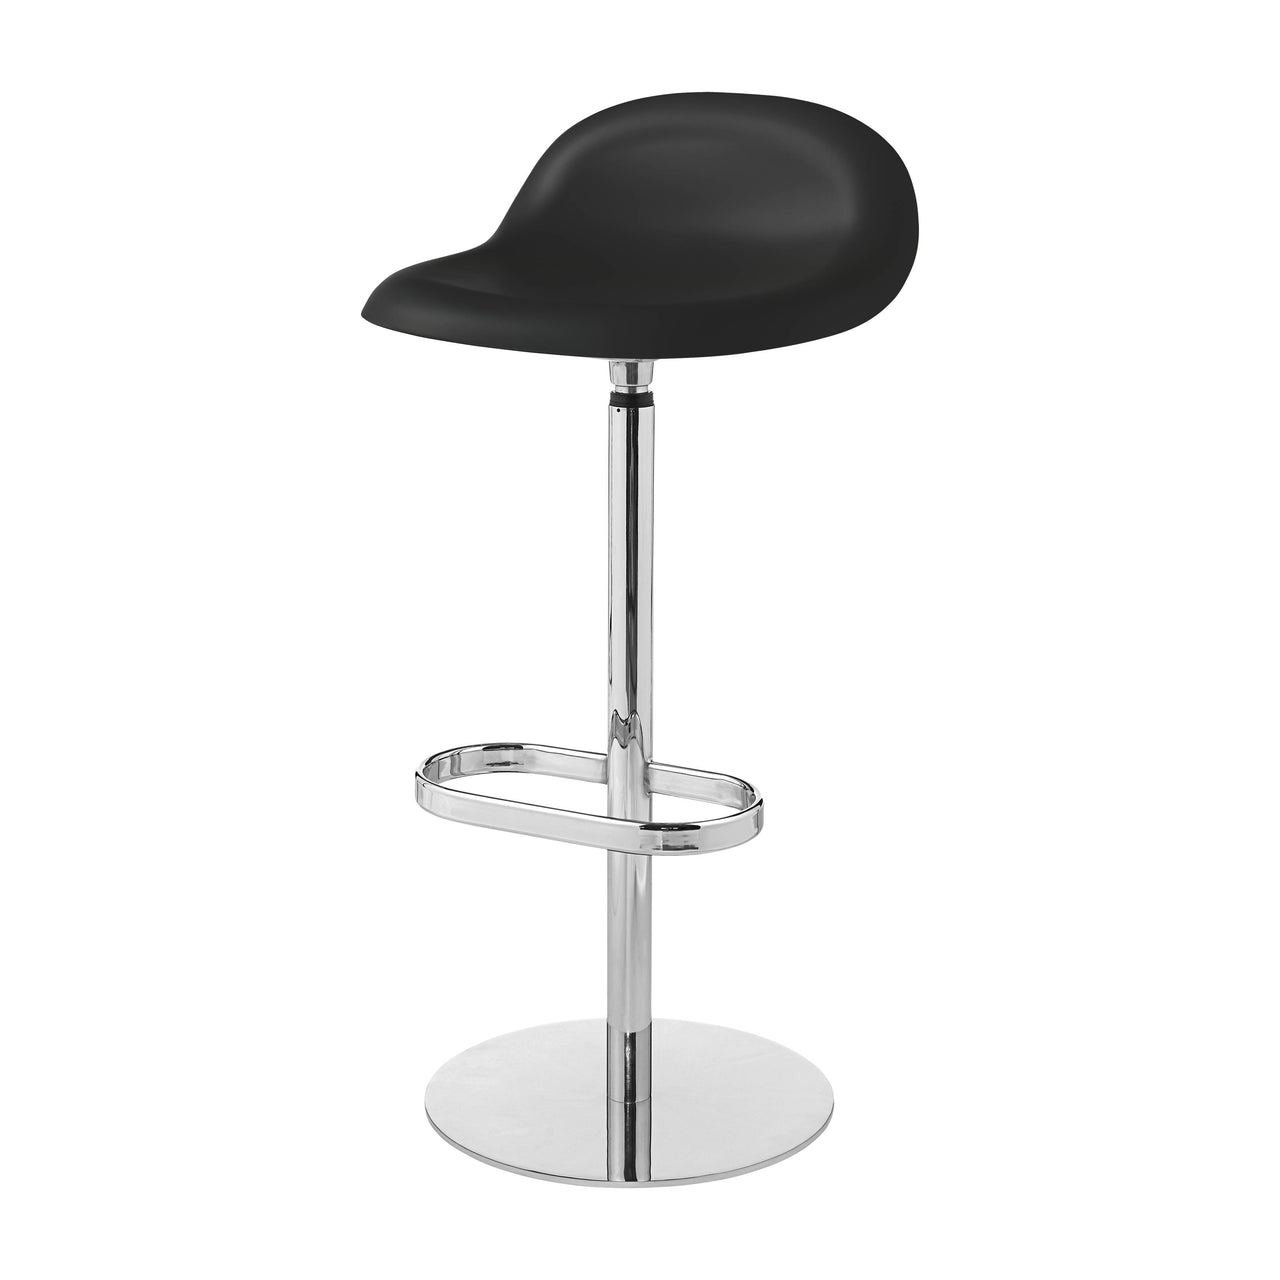 3D Bar Stool: Swivel Base + Black